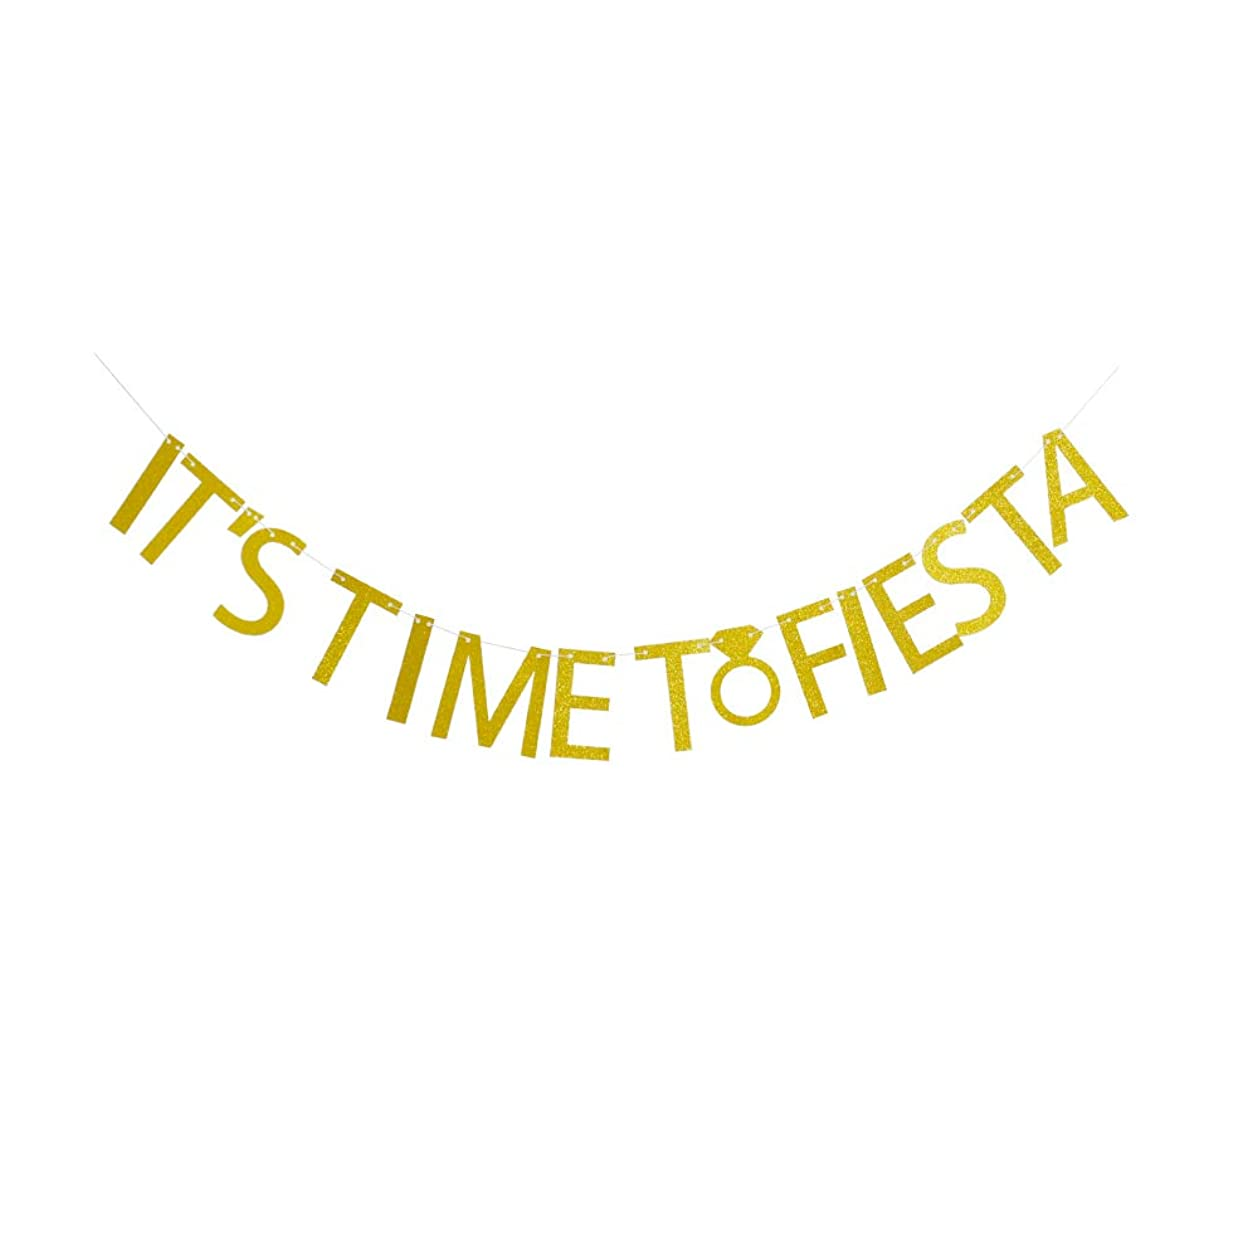 It's Time to Fiesta Banner for Funny Engament/Birthday/ Graduation/Promotion/ Bacholorette/Wedding Party Supplies, Gold Glitter Party Decorations ptmmy2495